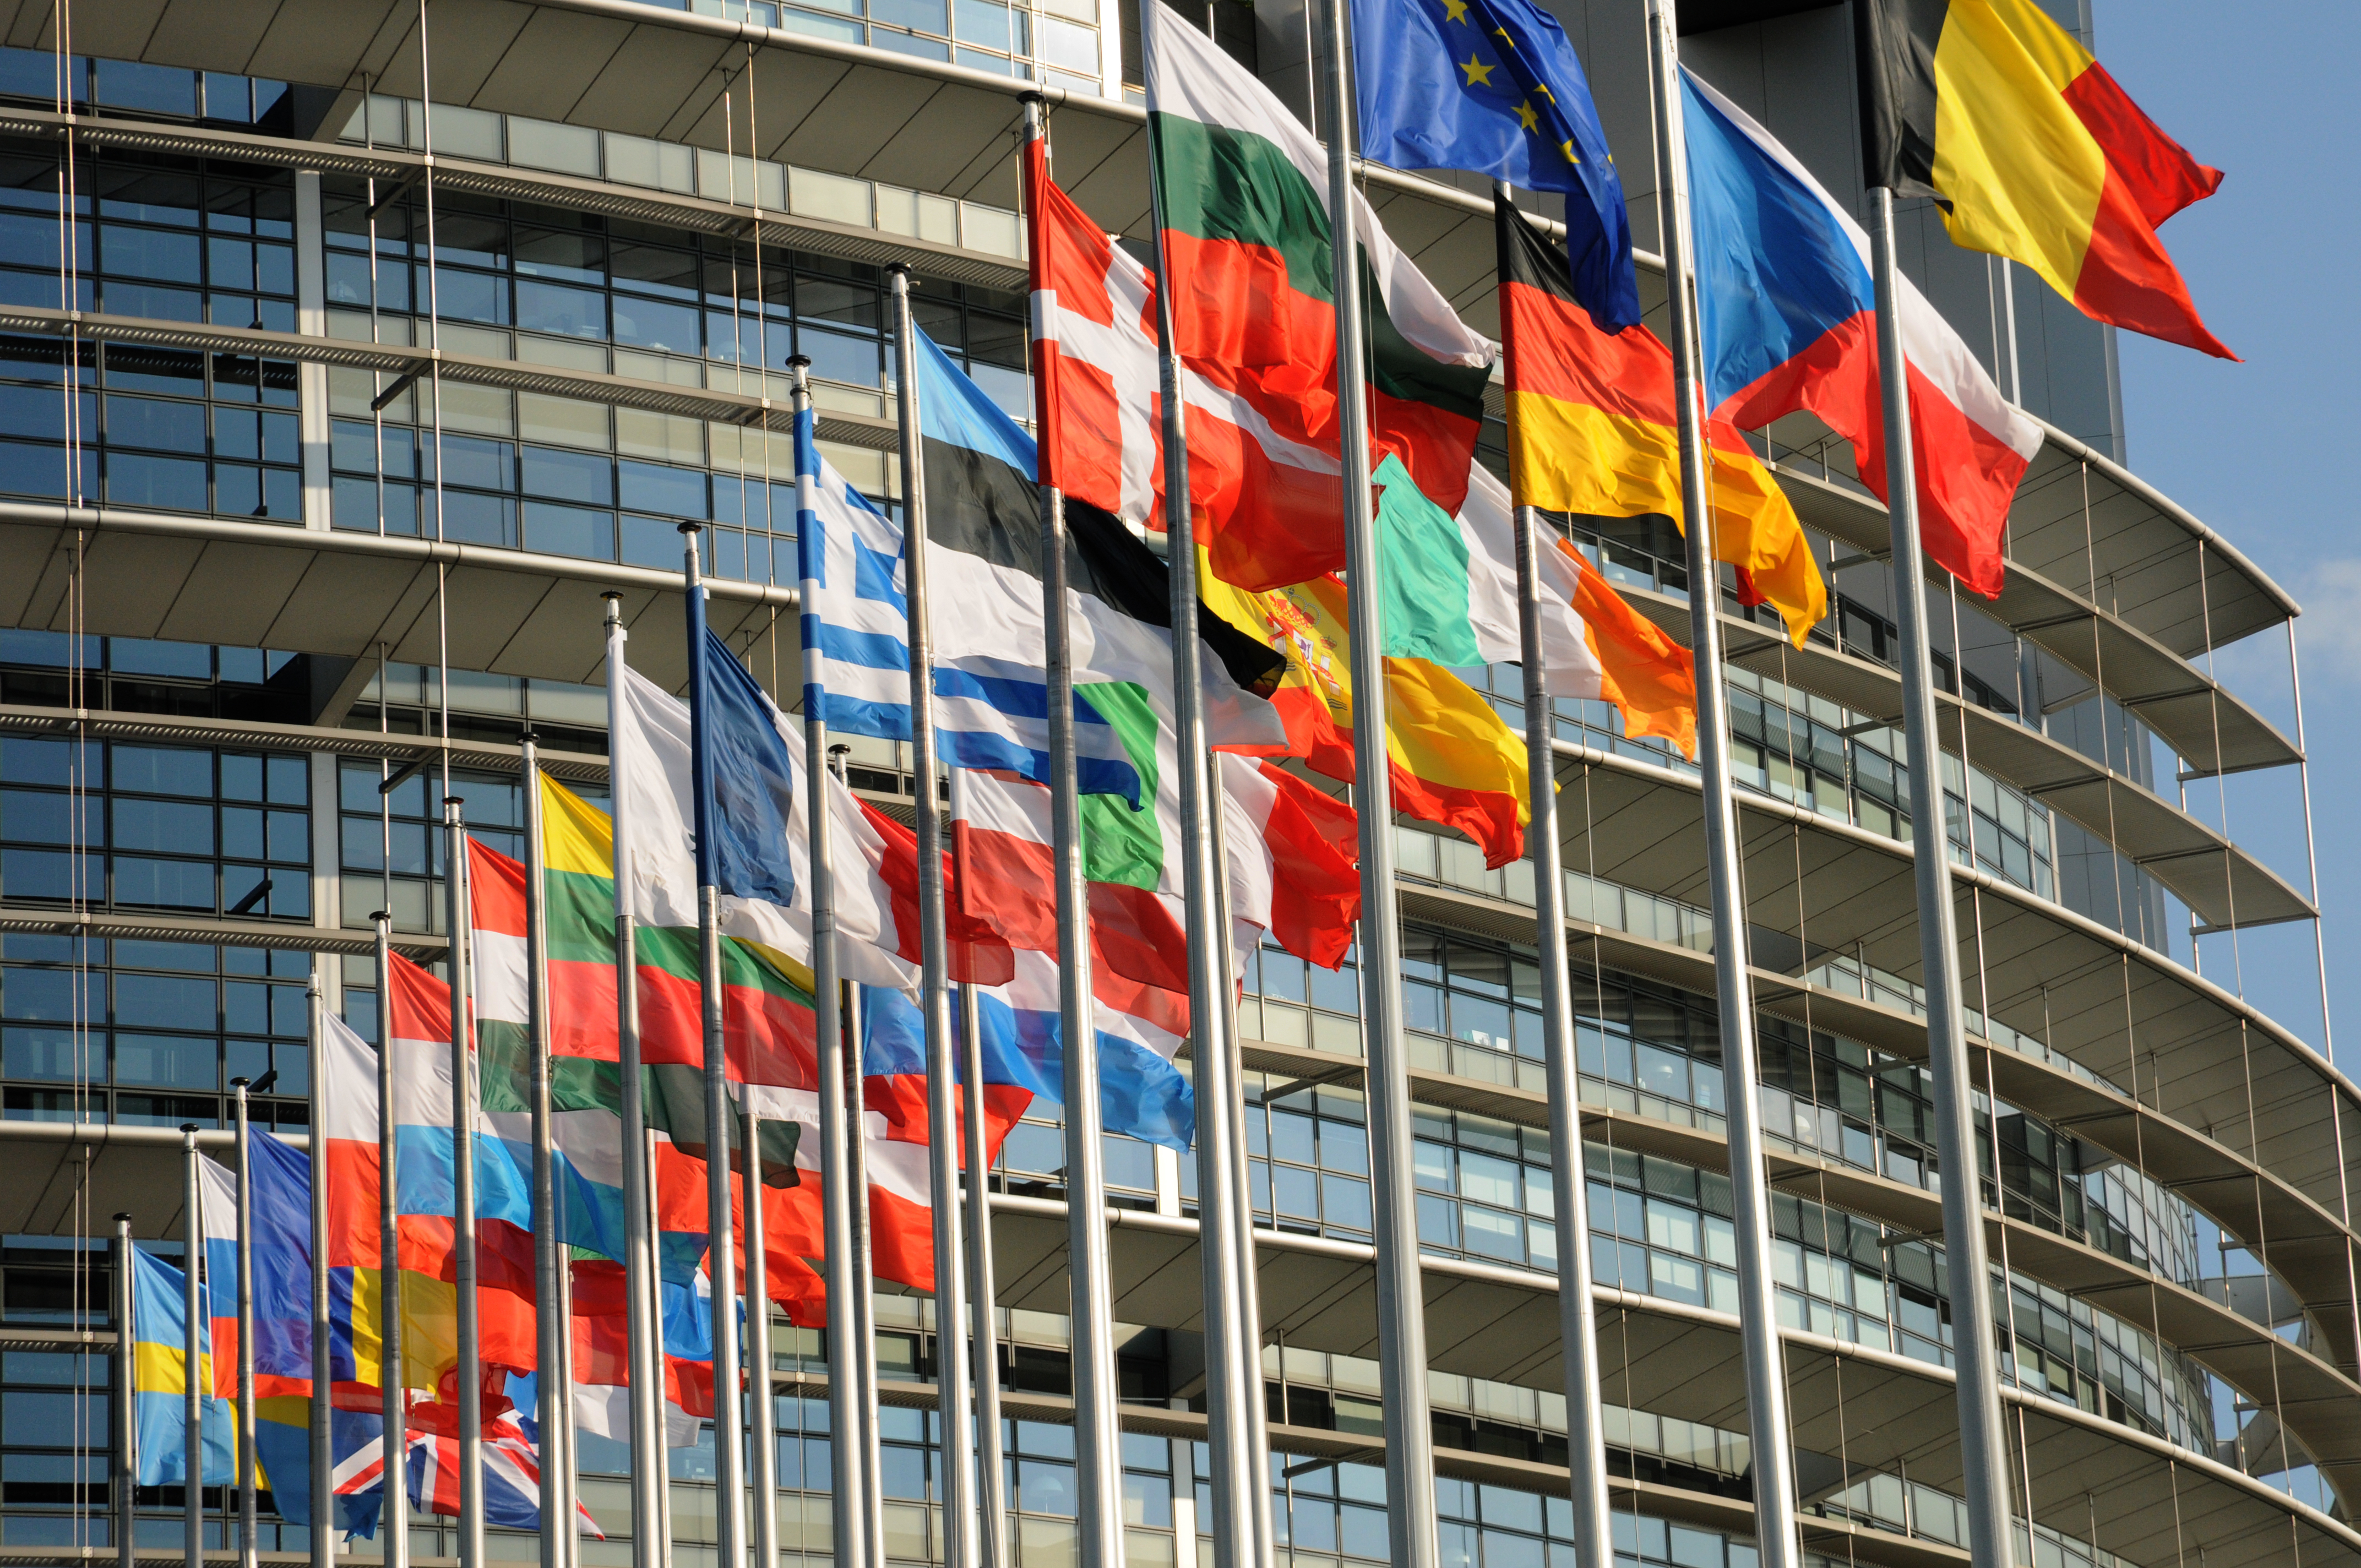 EC says Slovenia needs to pursue fiscal policy in line with SGP